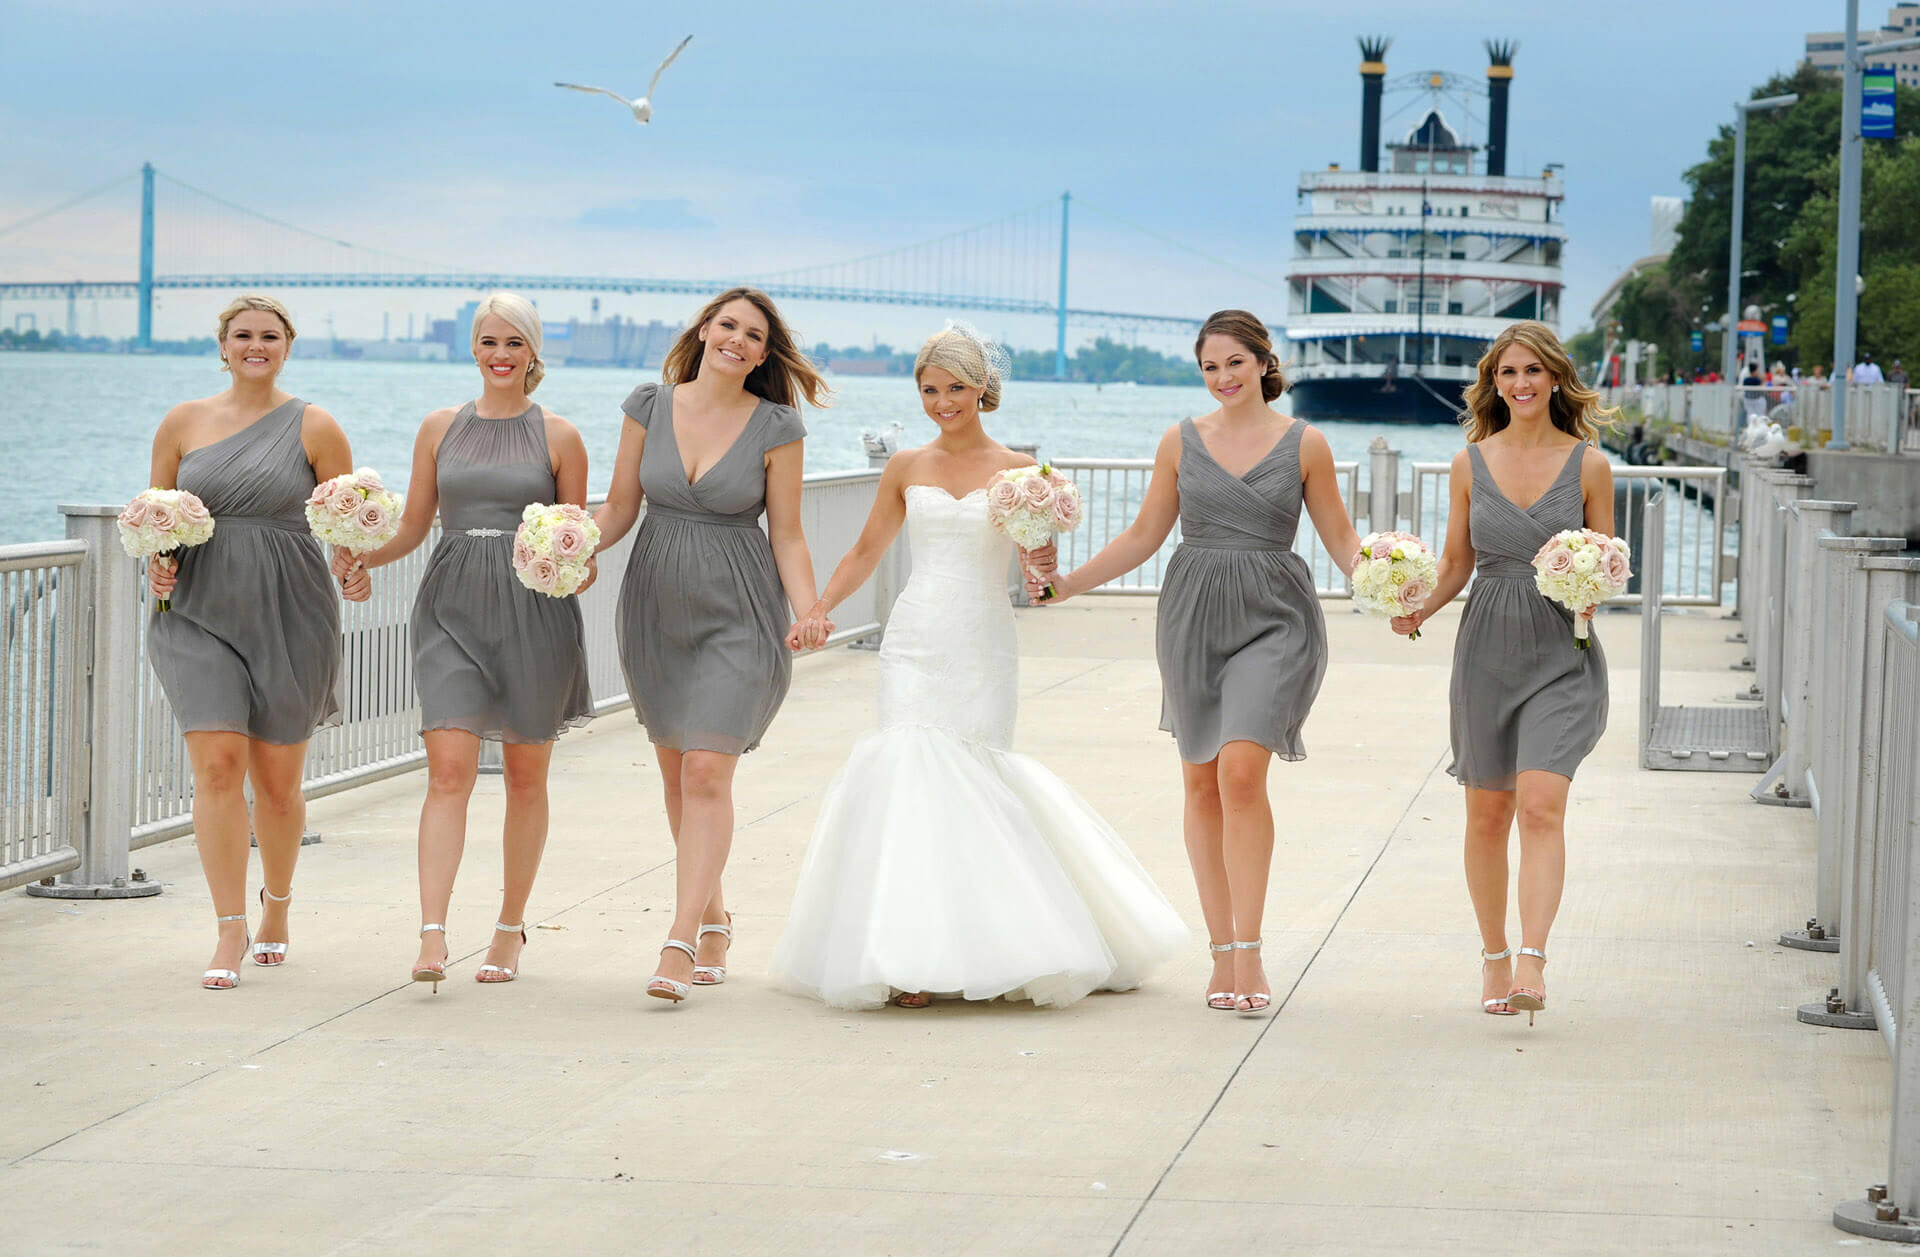 Best Michigan wedding photographer's photo of a Michigan bride and her bridesmaids walk on the boardwalk of Detroit in front of the Waterview Loft.